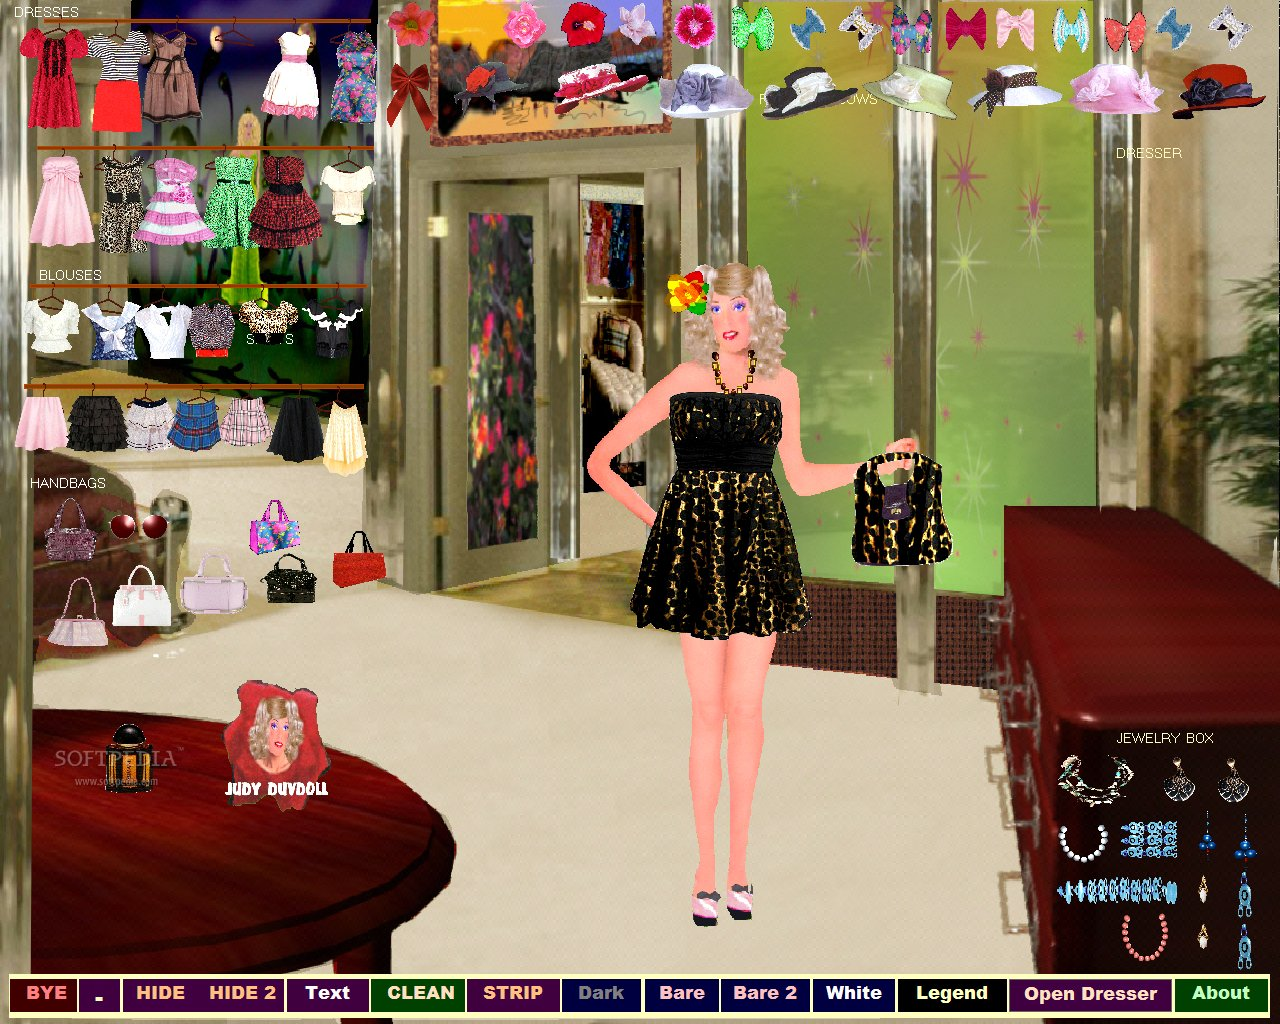 Wedding dress up room decor games